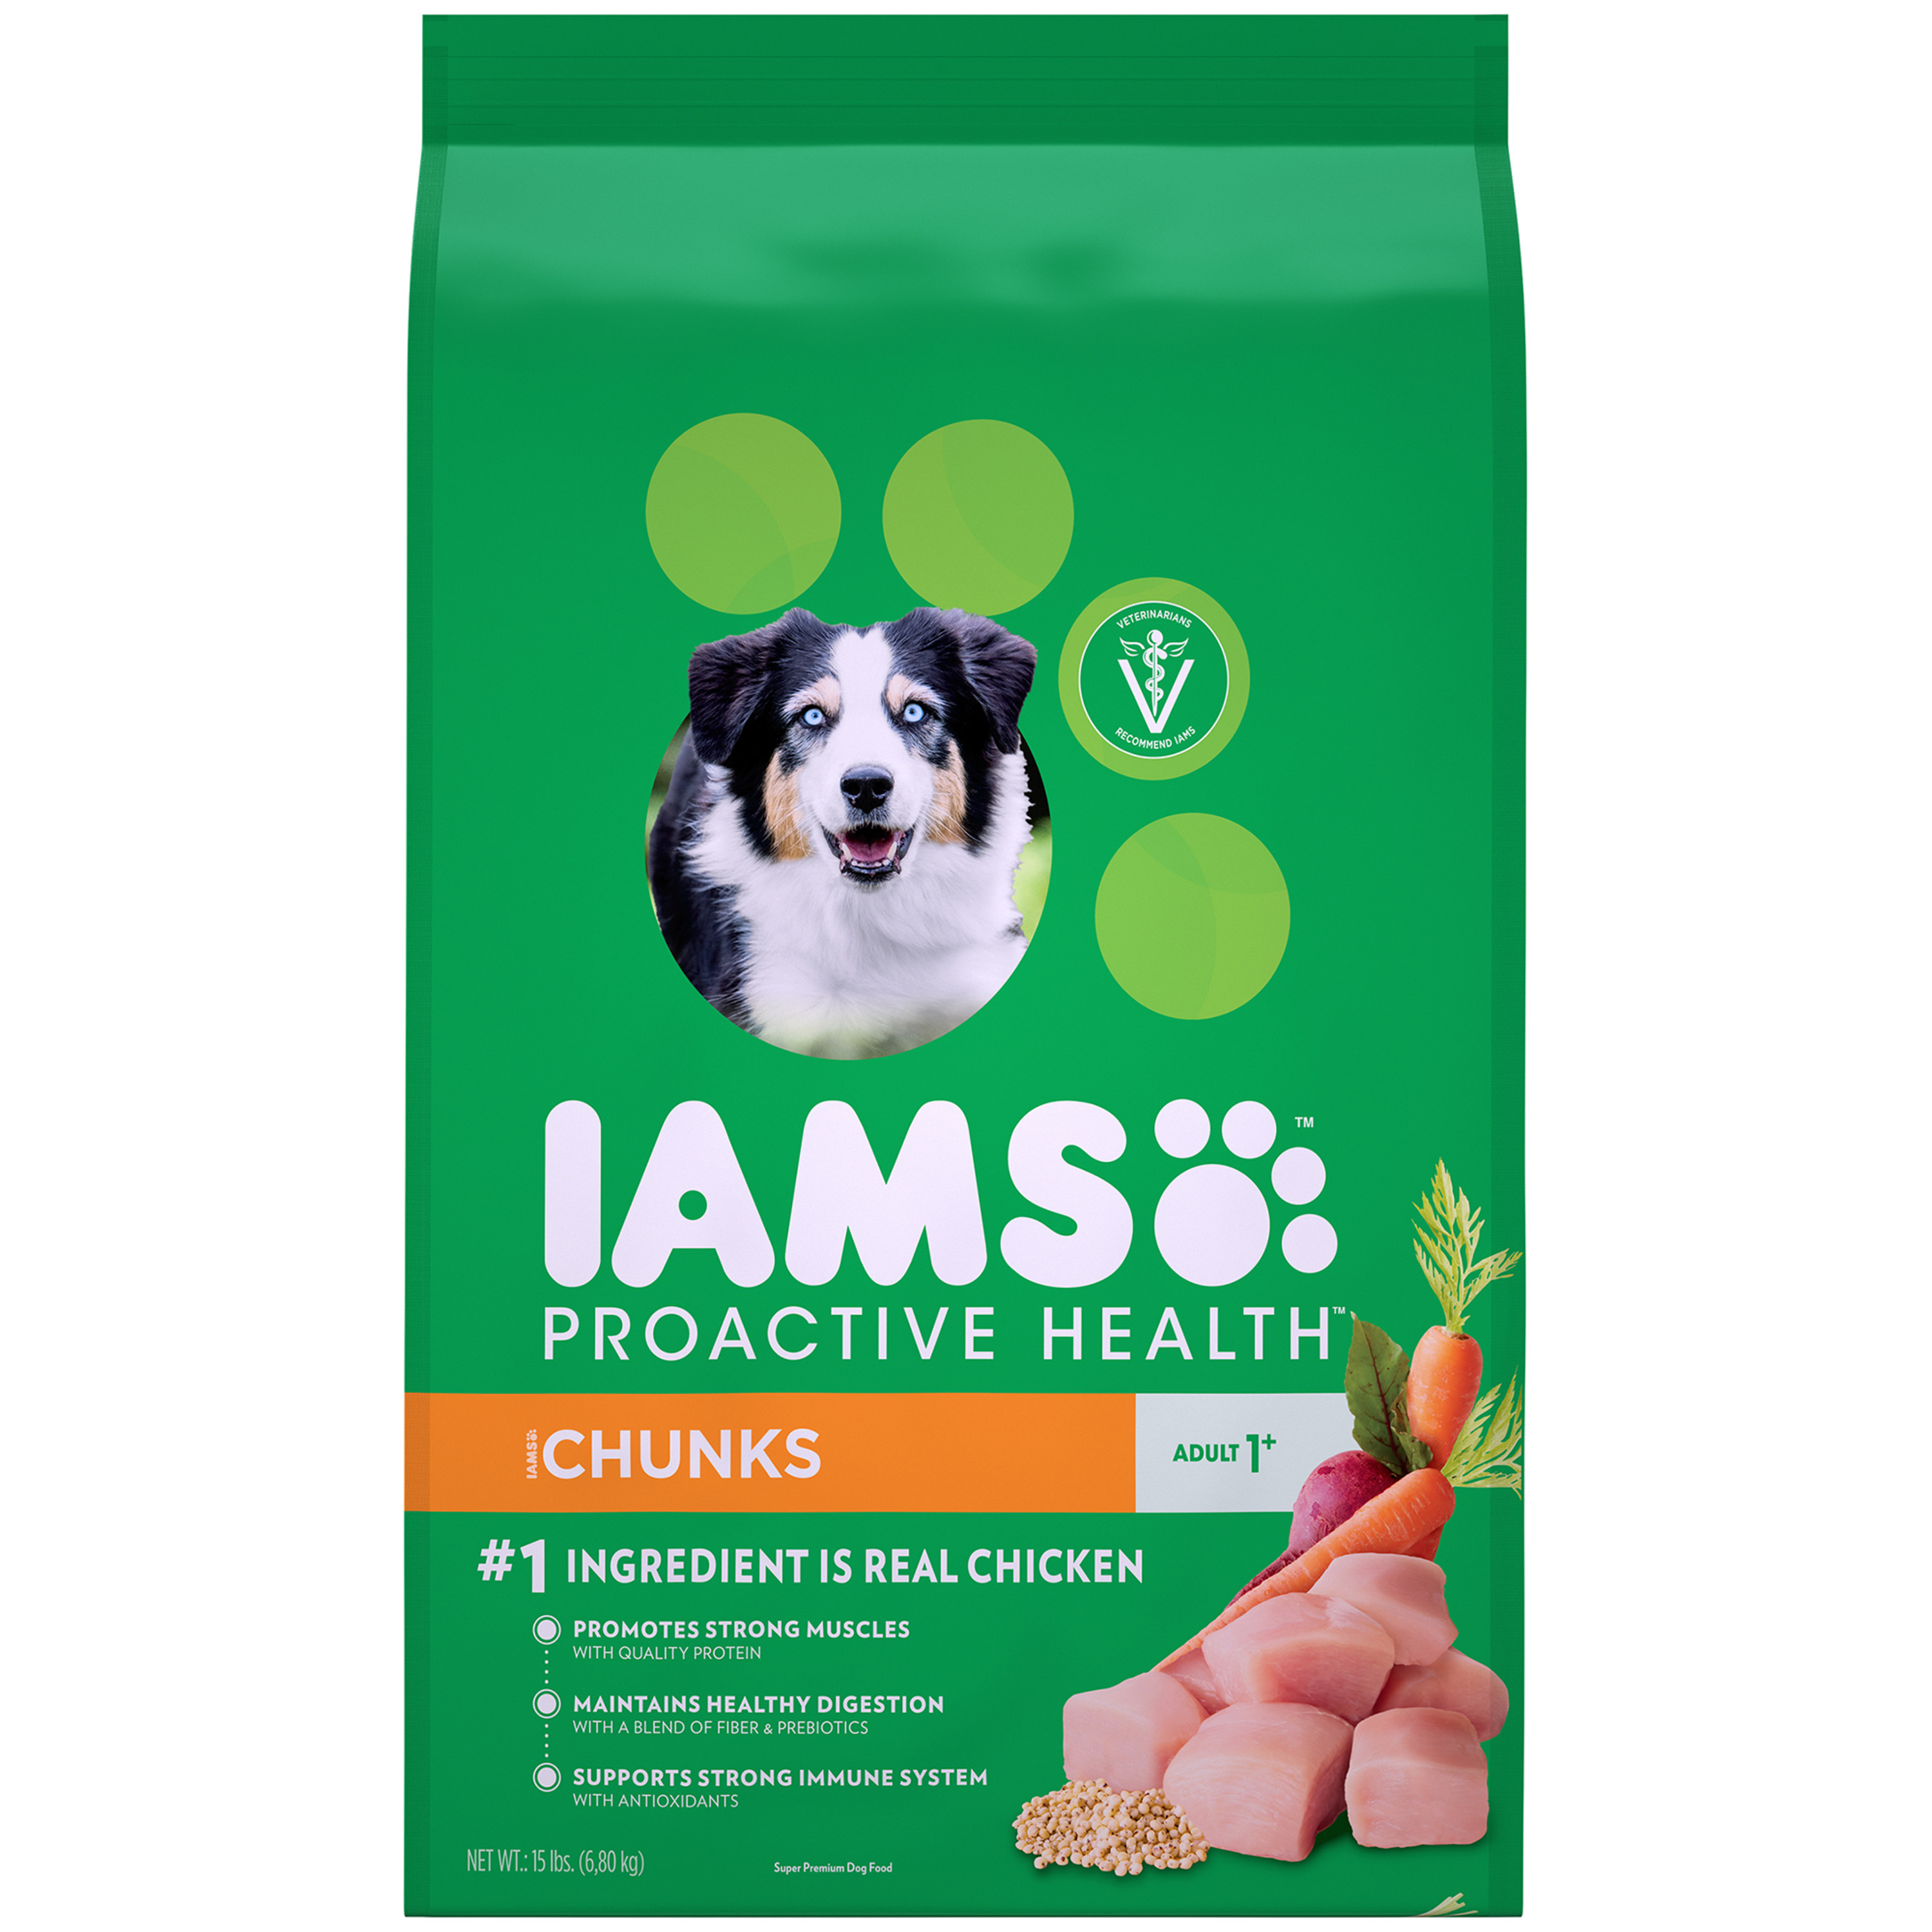 IAMS ProActive Health Chunks Dry Dog Food for All Dogs – Chicken, 15 Pound Bag